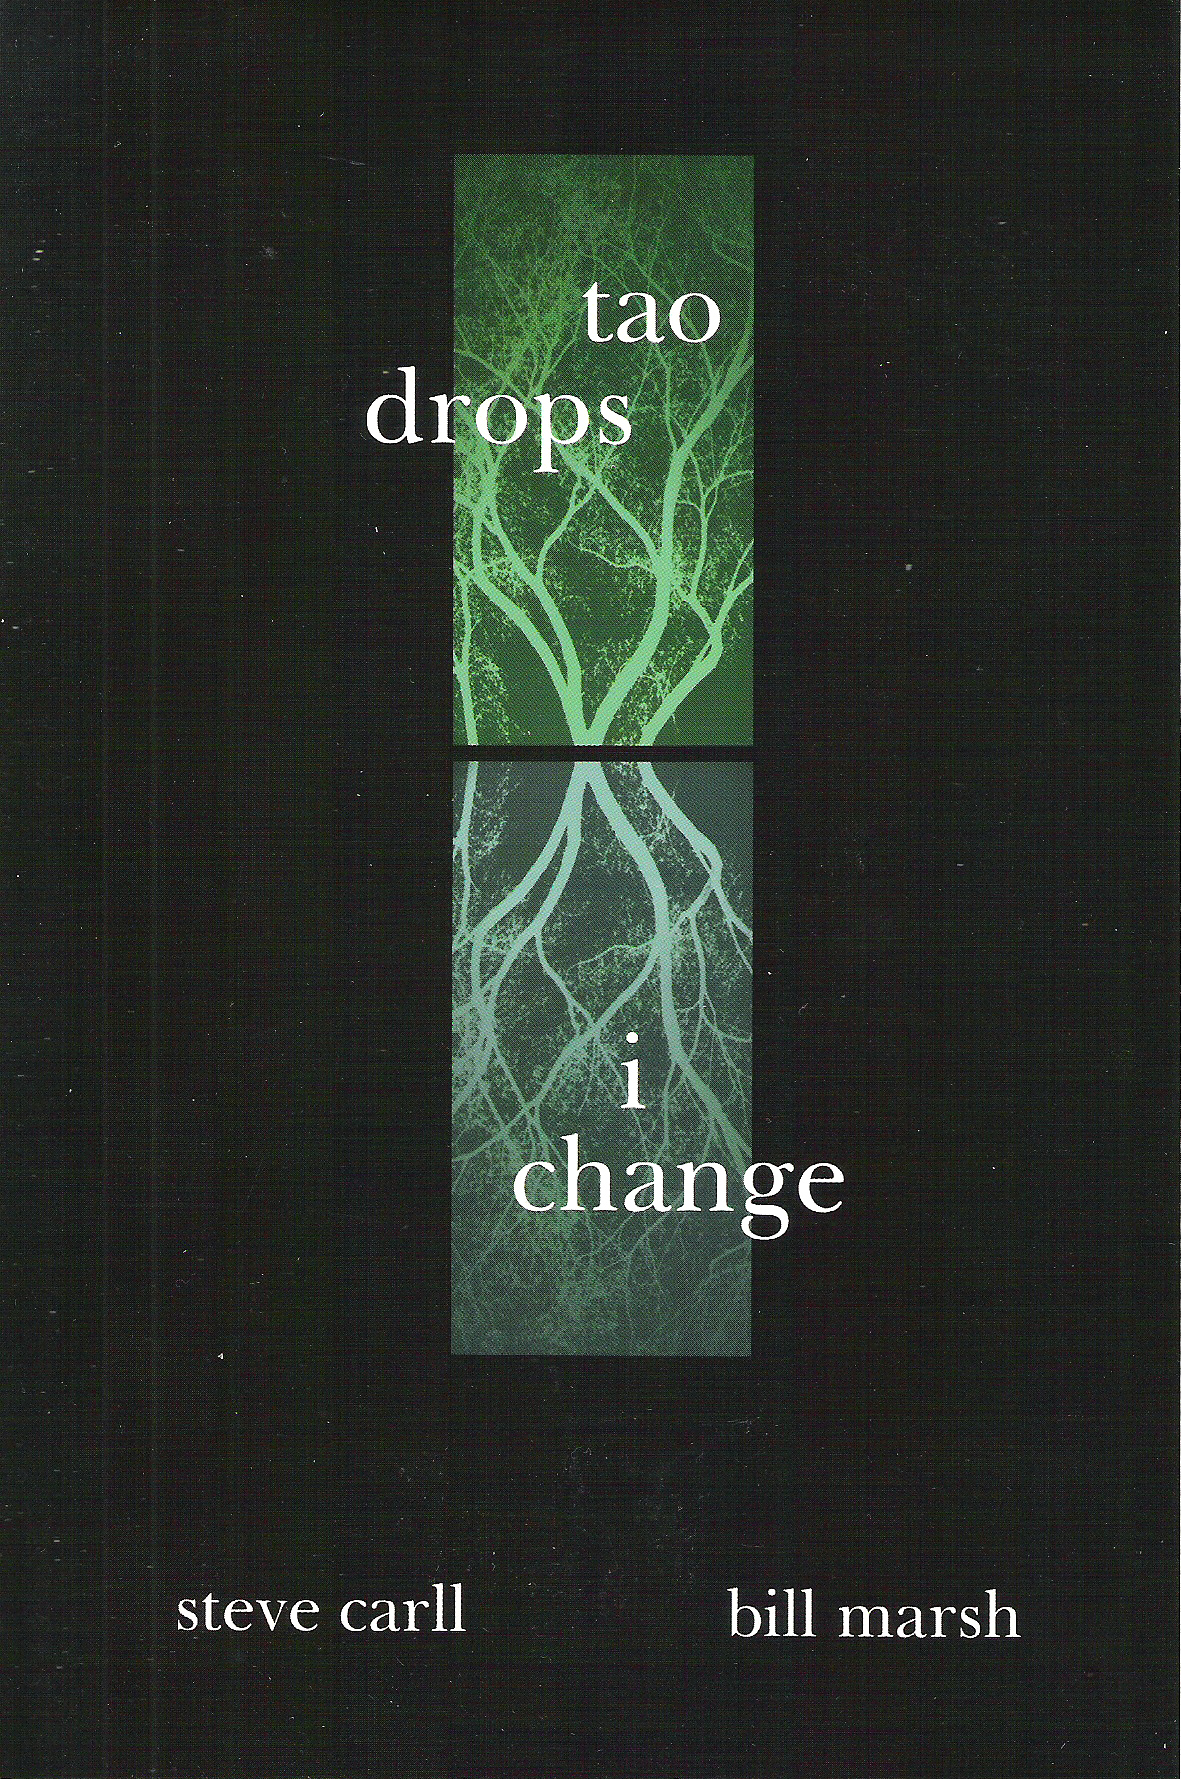 Tao Drops, I Change by Steve Carll and Bill Marsh